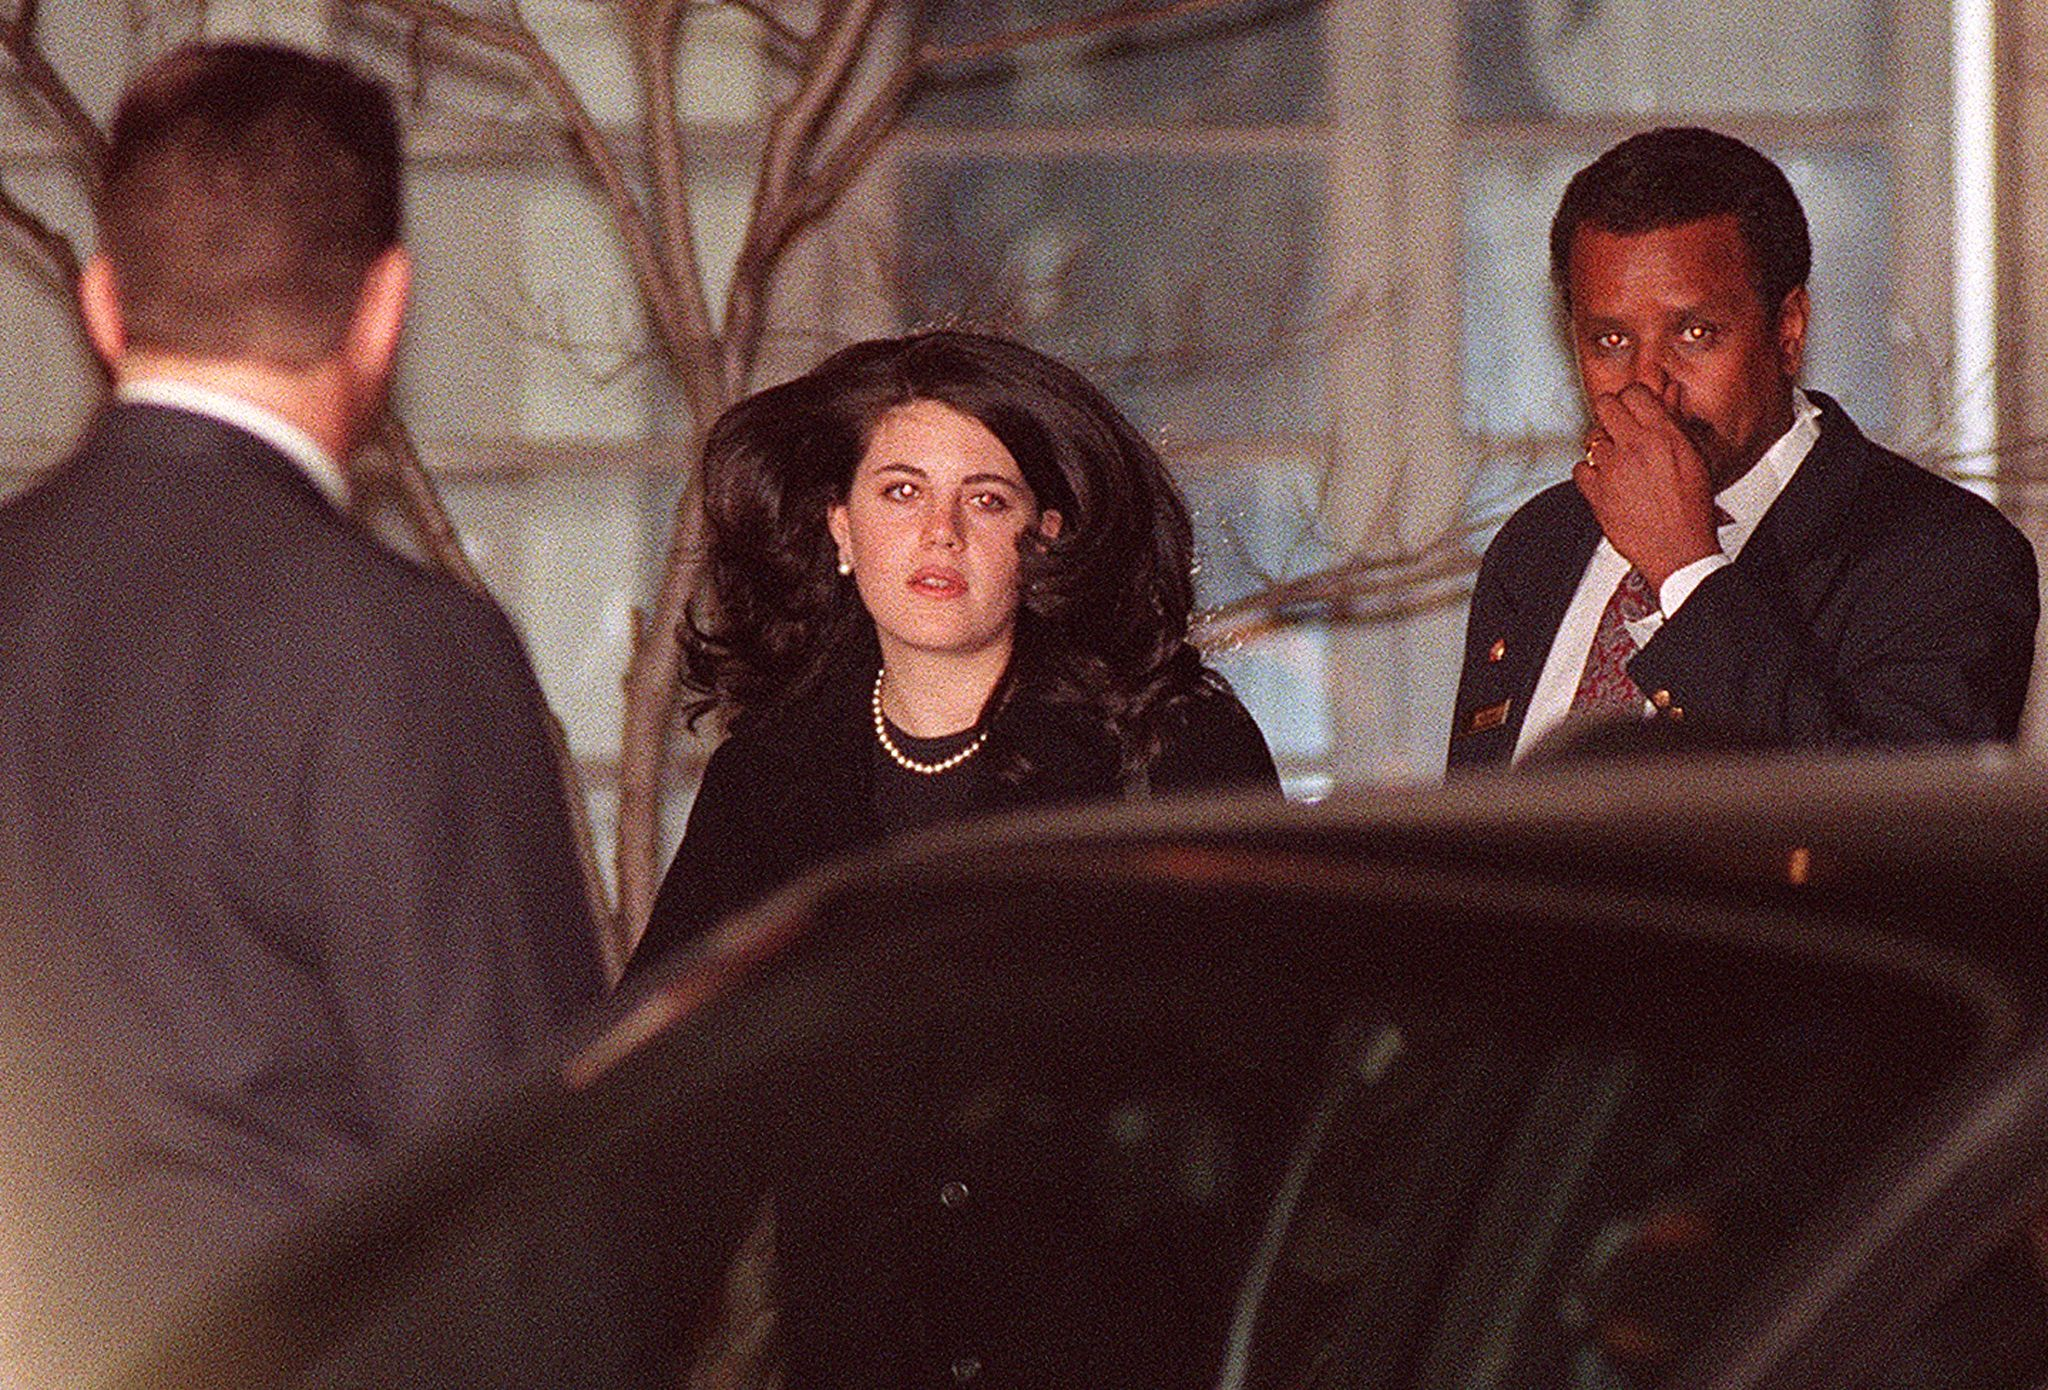 Monica Lewinsky in Washington DC just after the scandal broke in 1998.